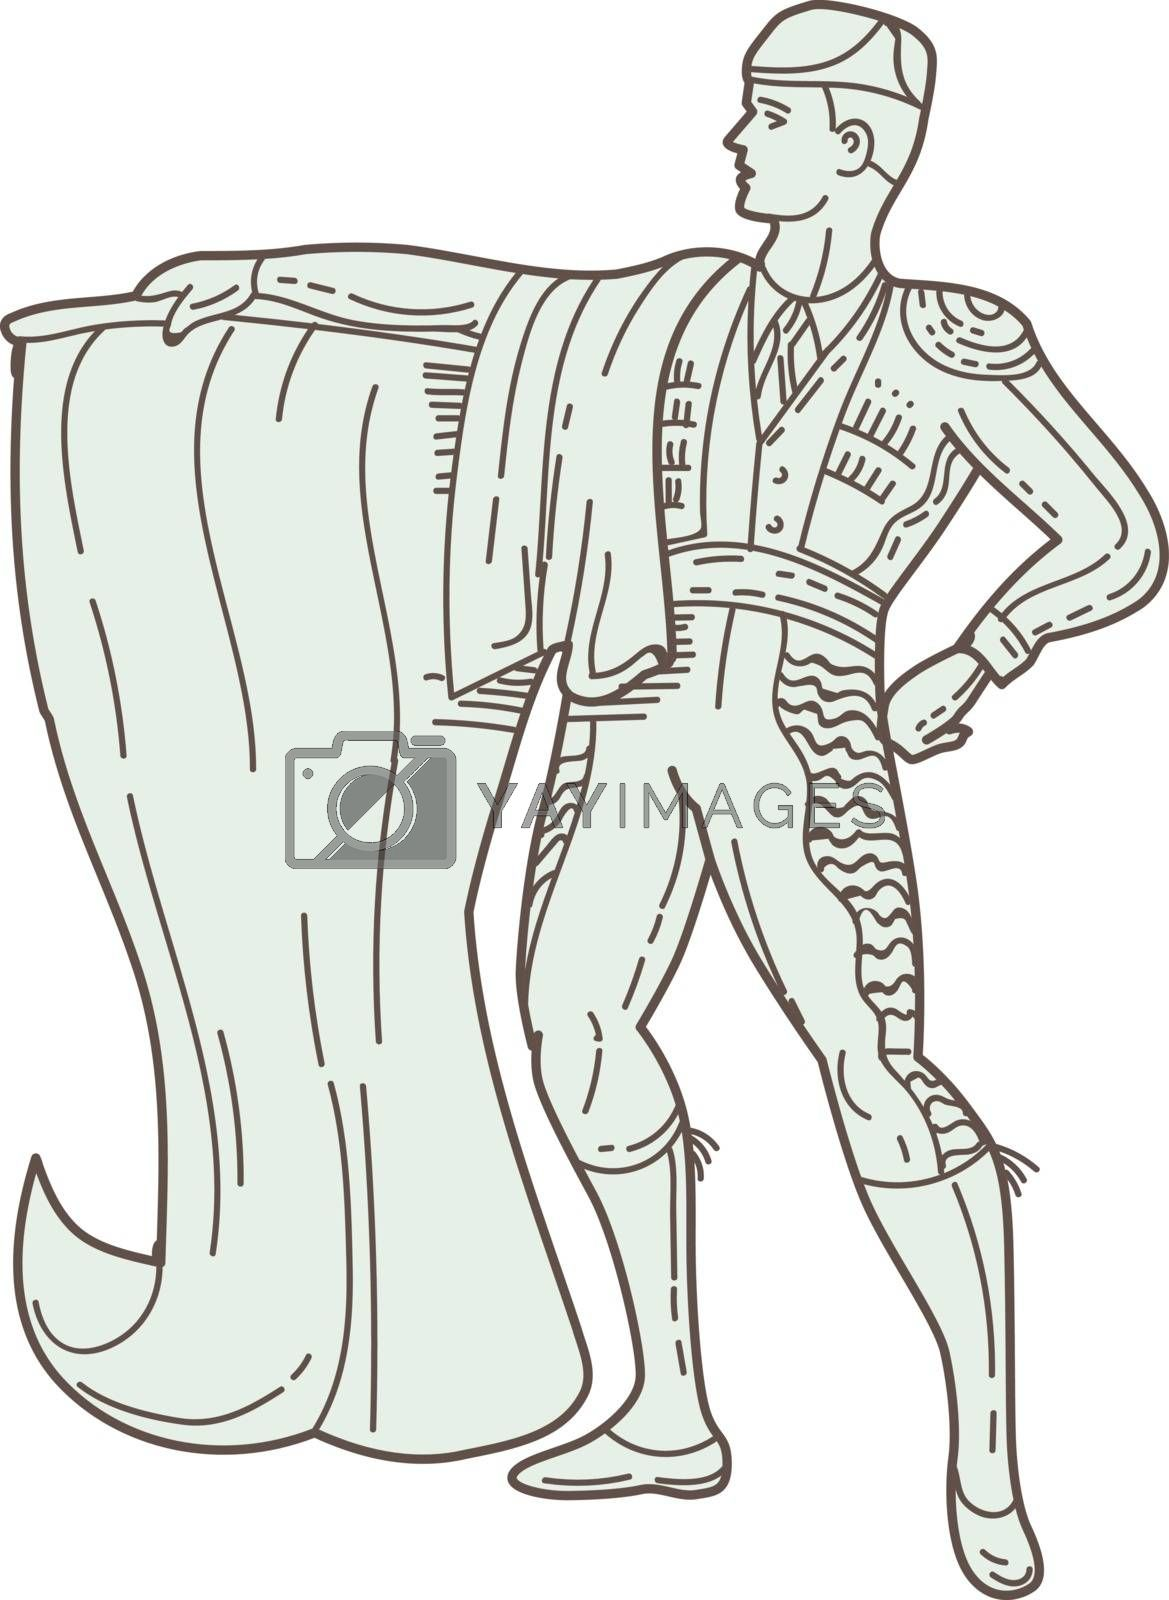 Mono line style illustration of a spanish matador holding cape looking to the side viewed from front set on isolated white background.